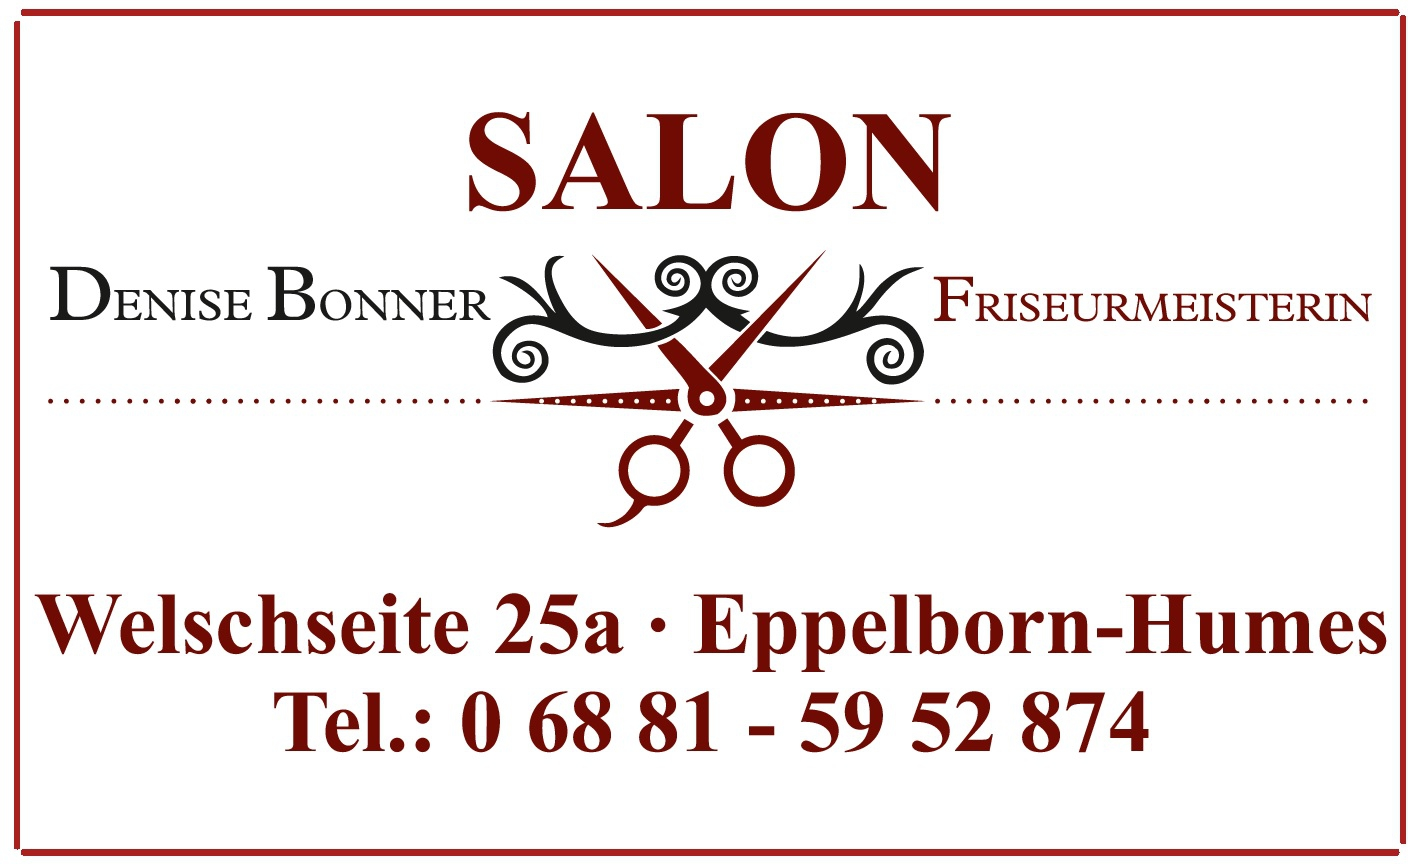 Salon Denise Bonner